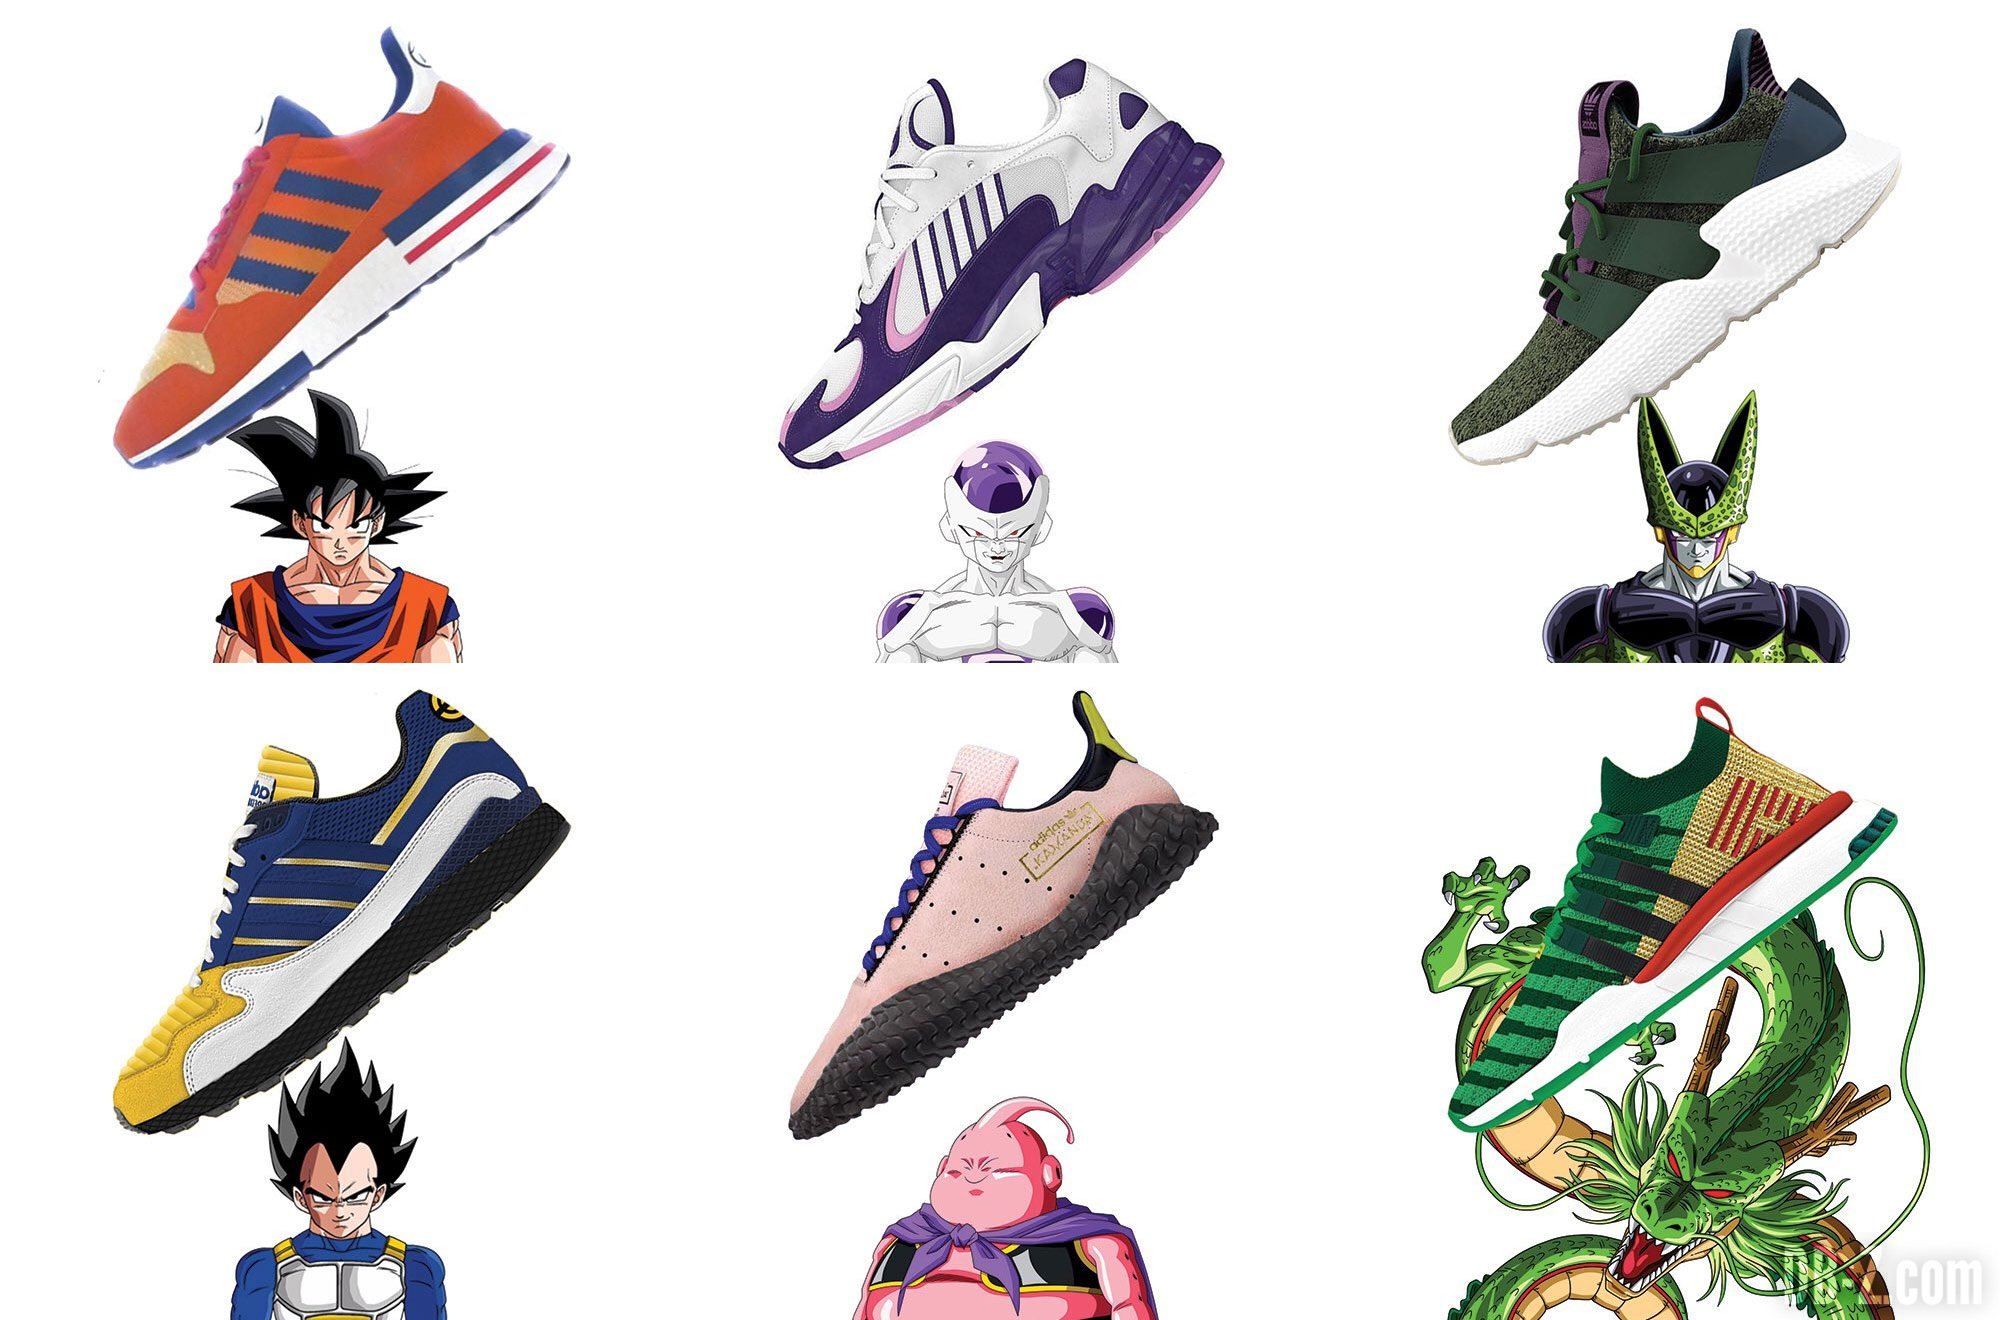 c73ffd3f73 Adidas X Dragon Ball Z - An Intersectionality of Nerdistry — Unique Drops